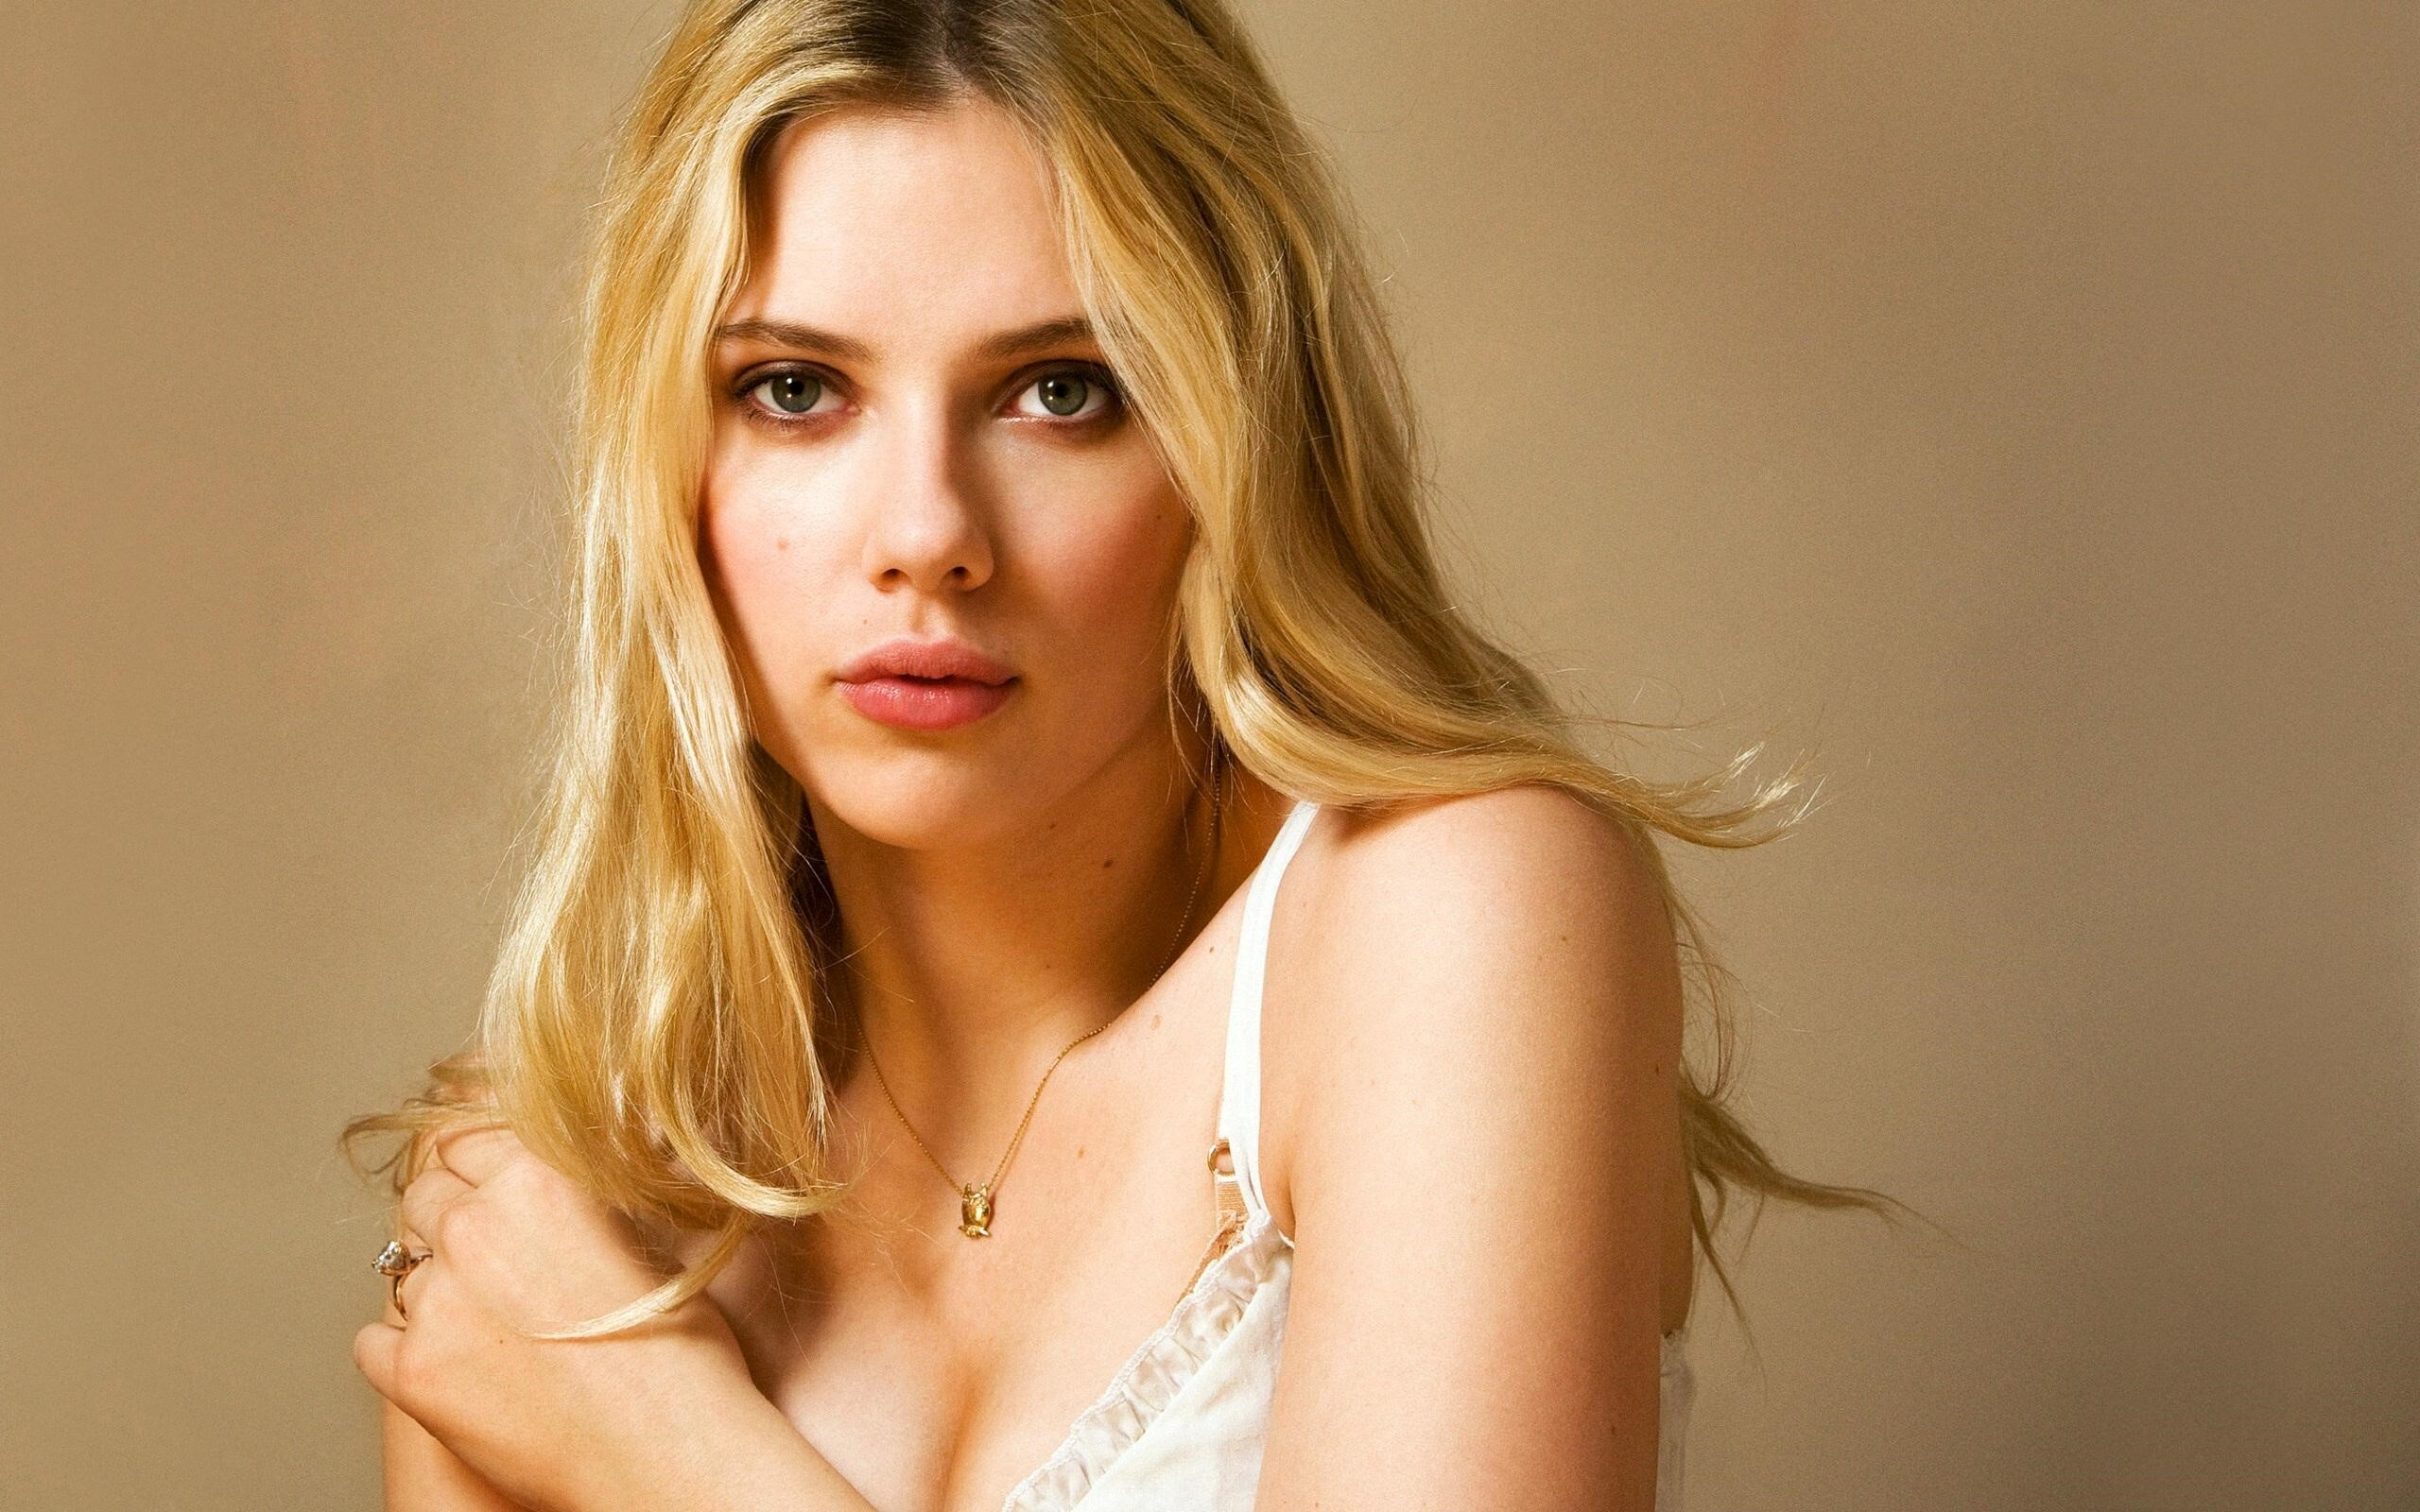 scarlett johansson wallpapers free download hd hot sexy actress images